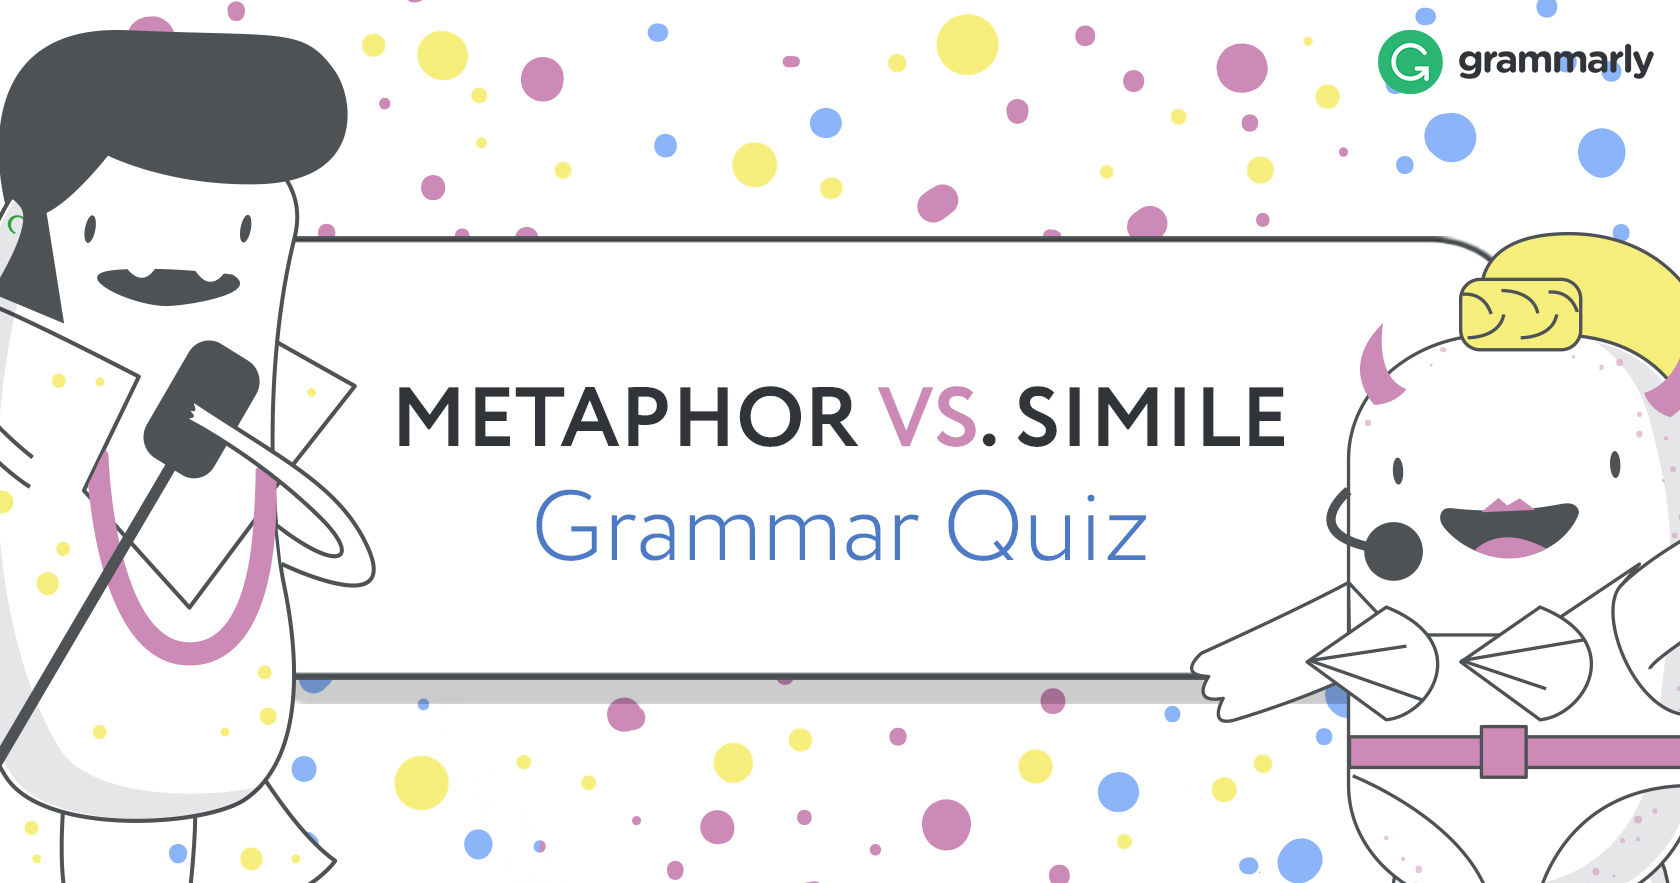 Metaphor Vs Simile Grammar Quiz